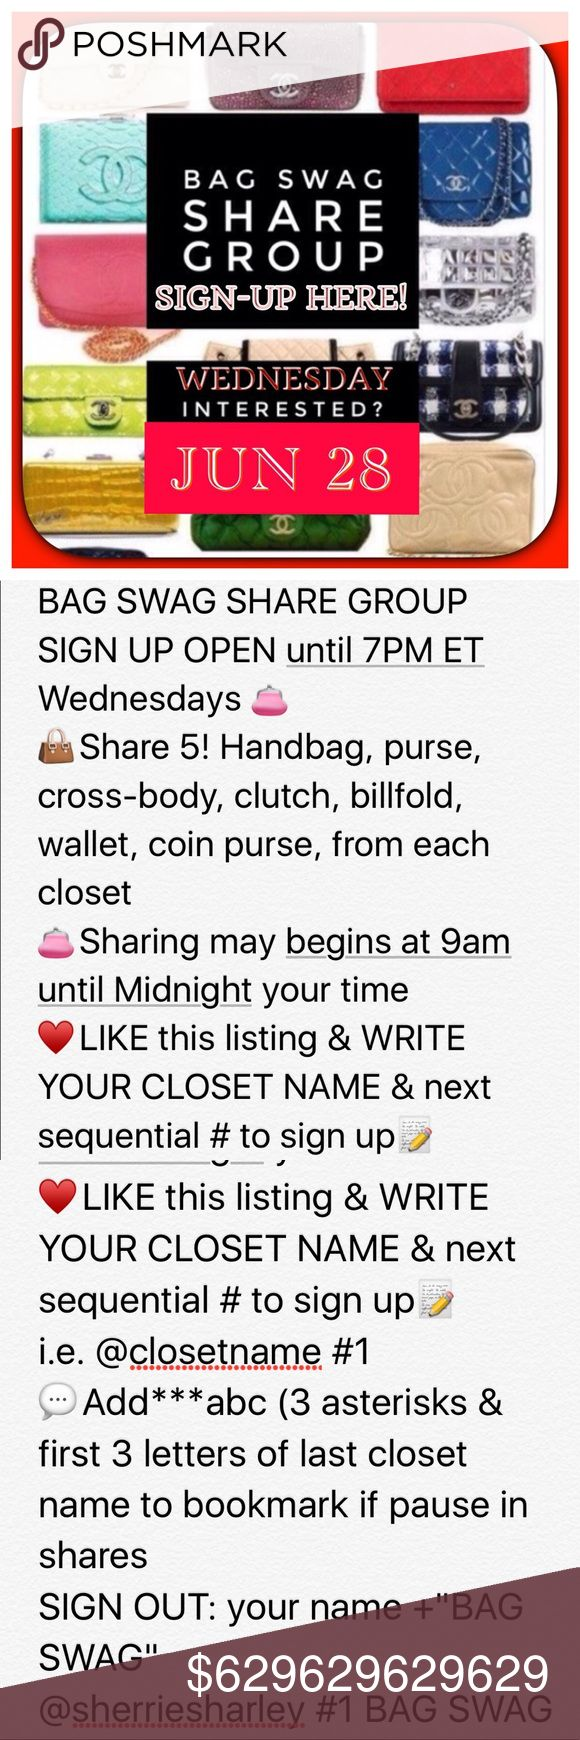 """6/28 BAG SWAG Share Group Sign Up OPEN til 7P ET BAG SWAG SHARE GROUP SIGN UP OPEN until 7PM ET Wednesdays 👛 👜Share 5:  Handbag, purse, cross-body, clutch, billfold, wallet, coin purse, from each closet 👛Sharing may begins at 9am until Midnight your time ♥️LIKE this listing & WRITE YOUR CLOSET NAME & next sequential # to sign up📝  i.e. @closetname #1 💬Add***abc (3 asterisks & first 3 letters of last closet name to bookmark if pause in shares SIGN OUT: your name +""""BAG SWAG""""…"""